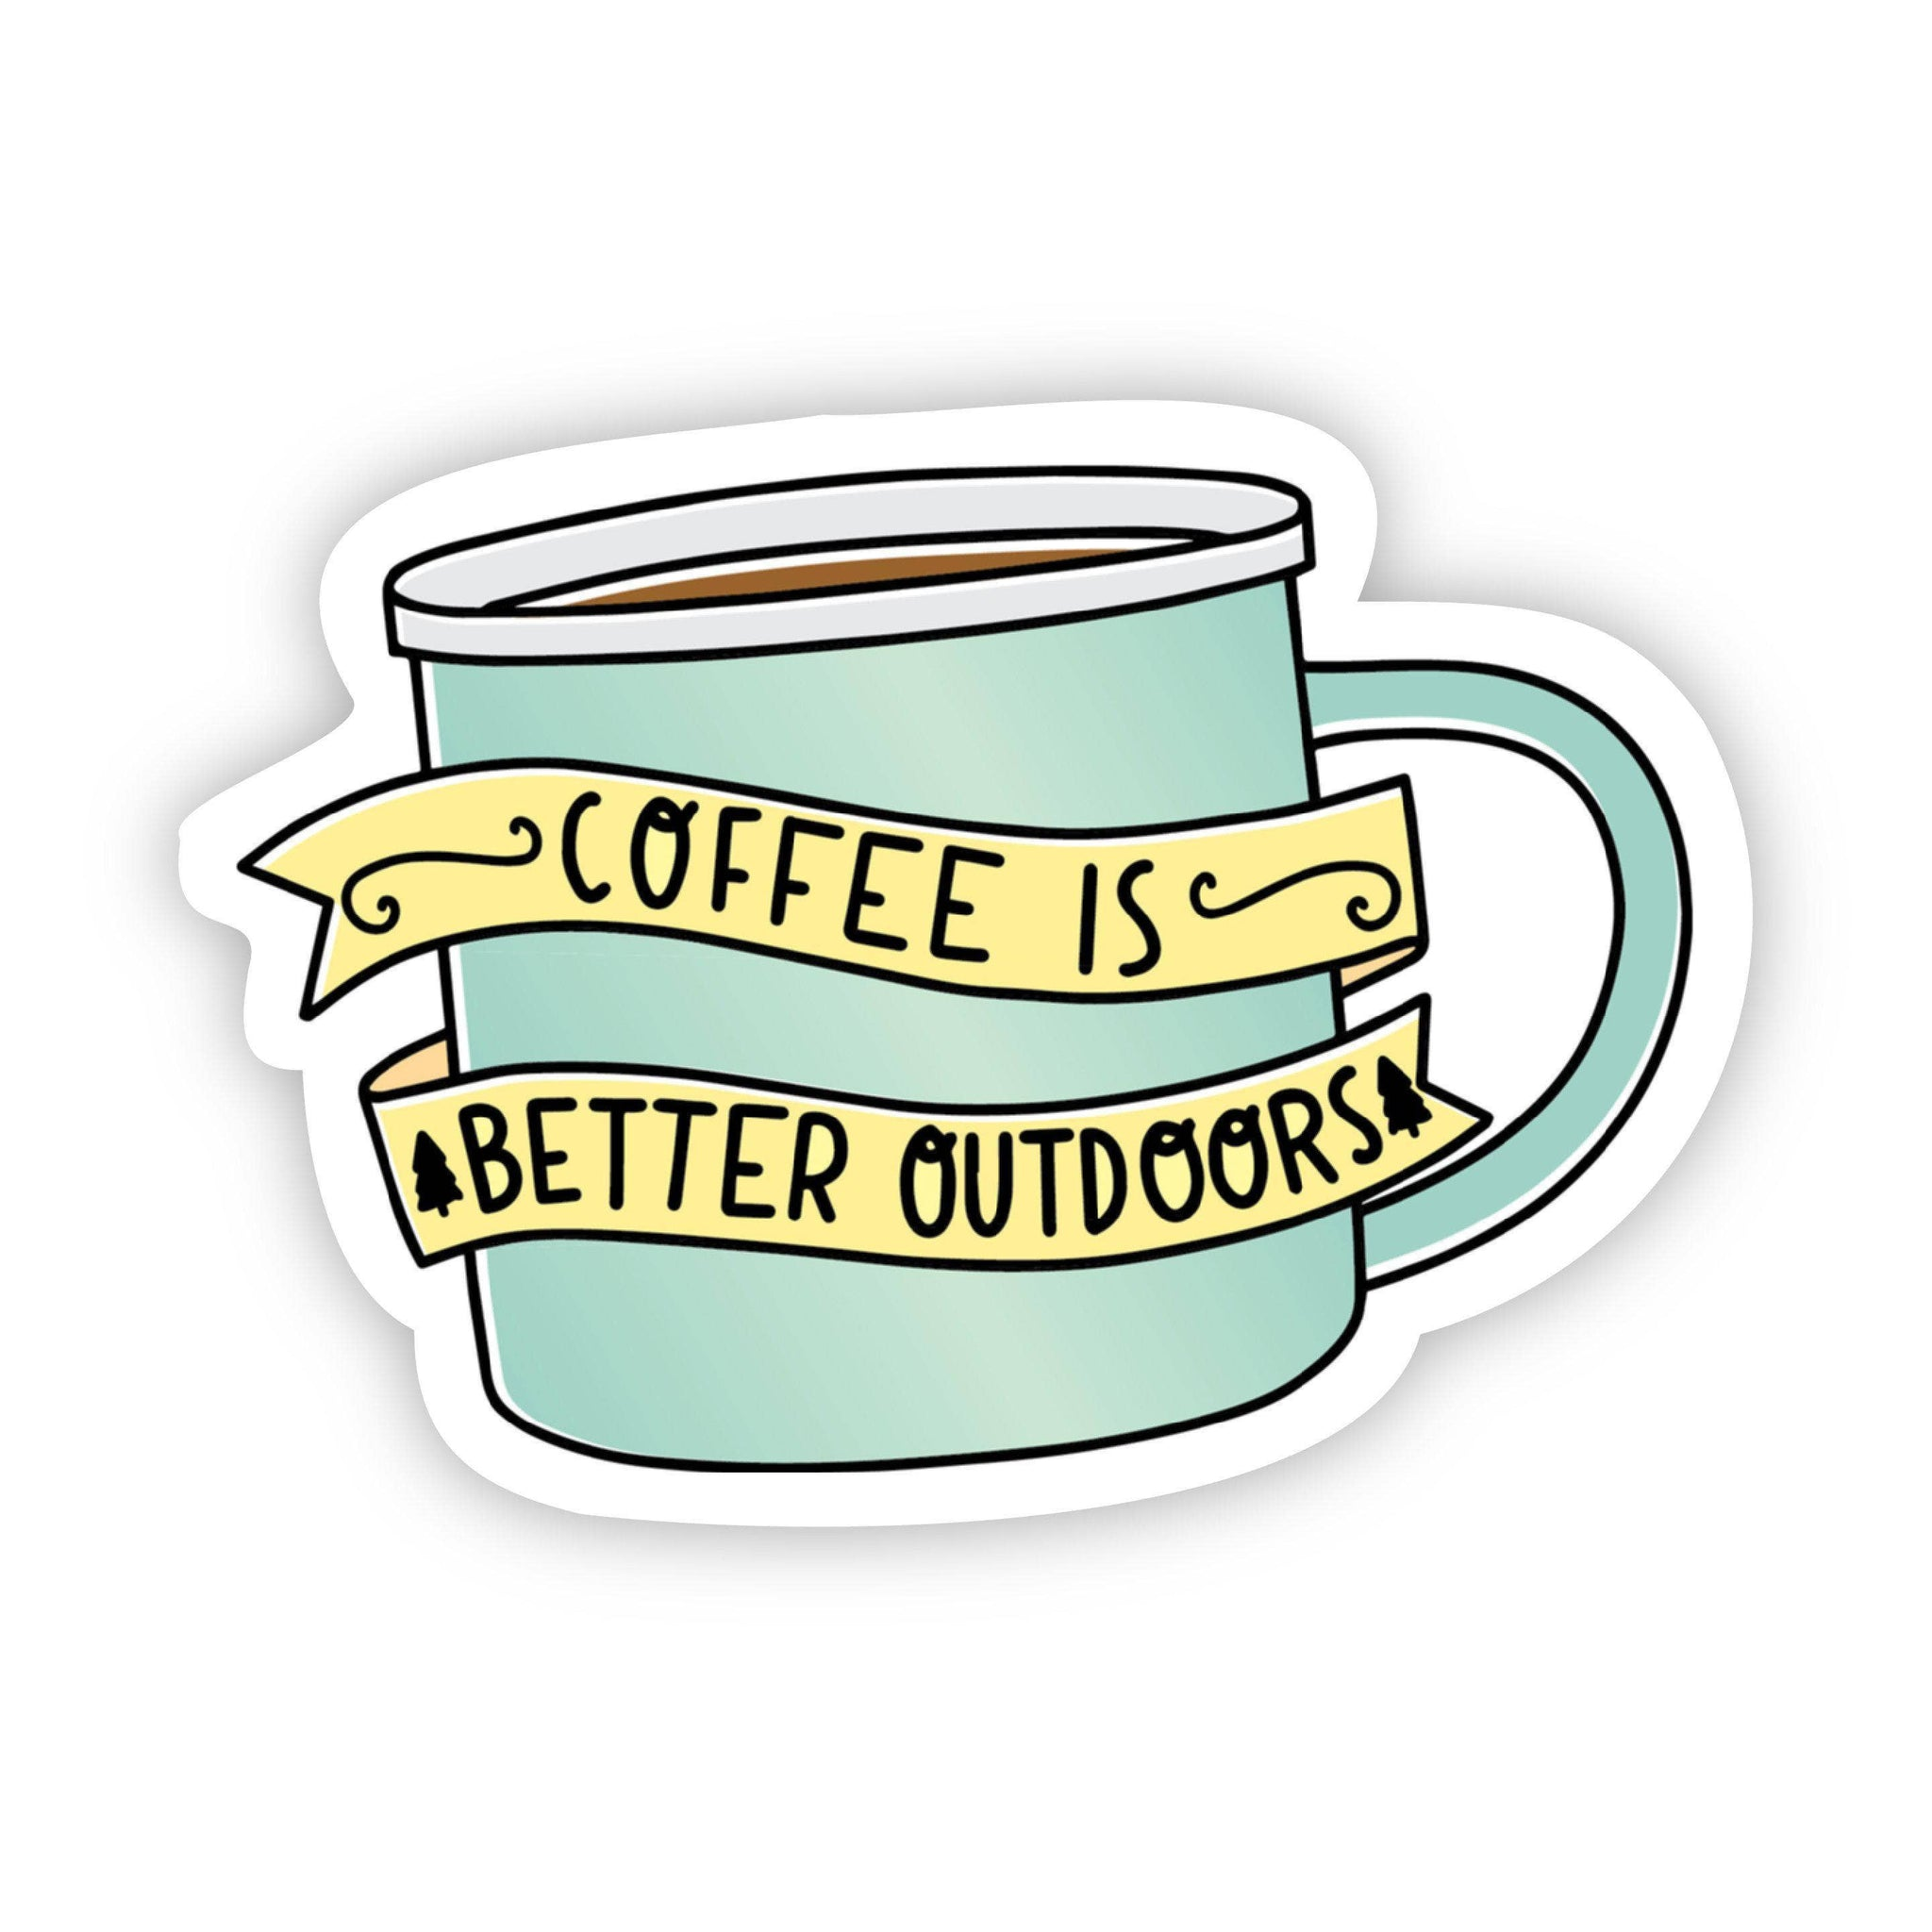 Big Moods - Coffee is Better Outdoors Nature Sticker